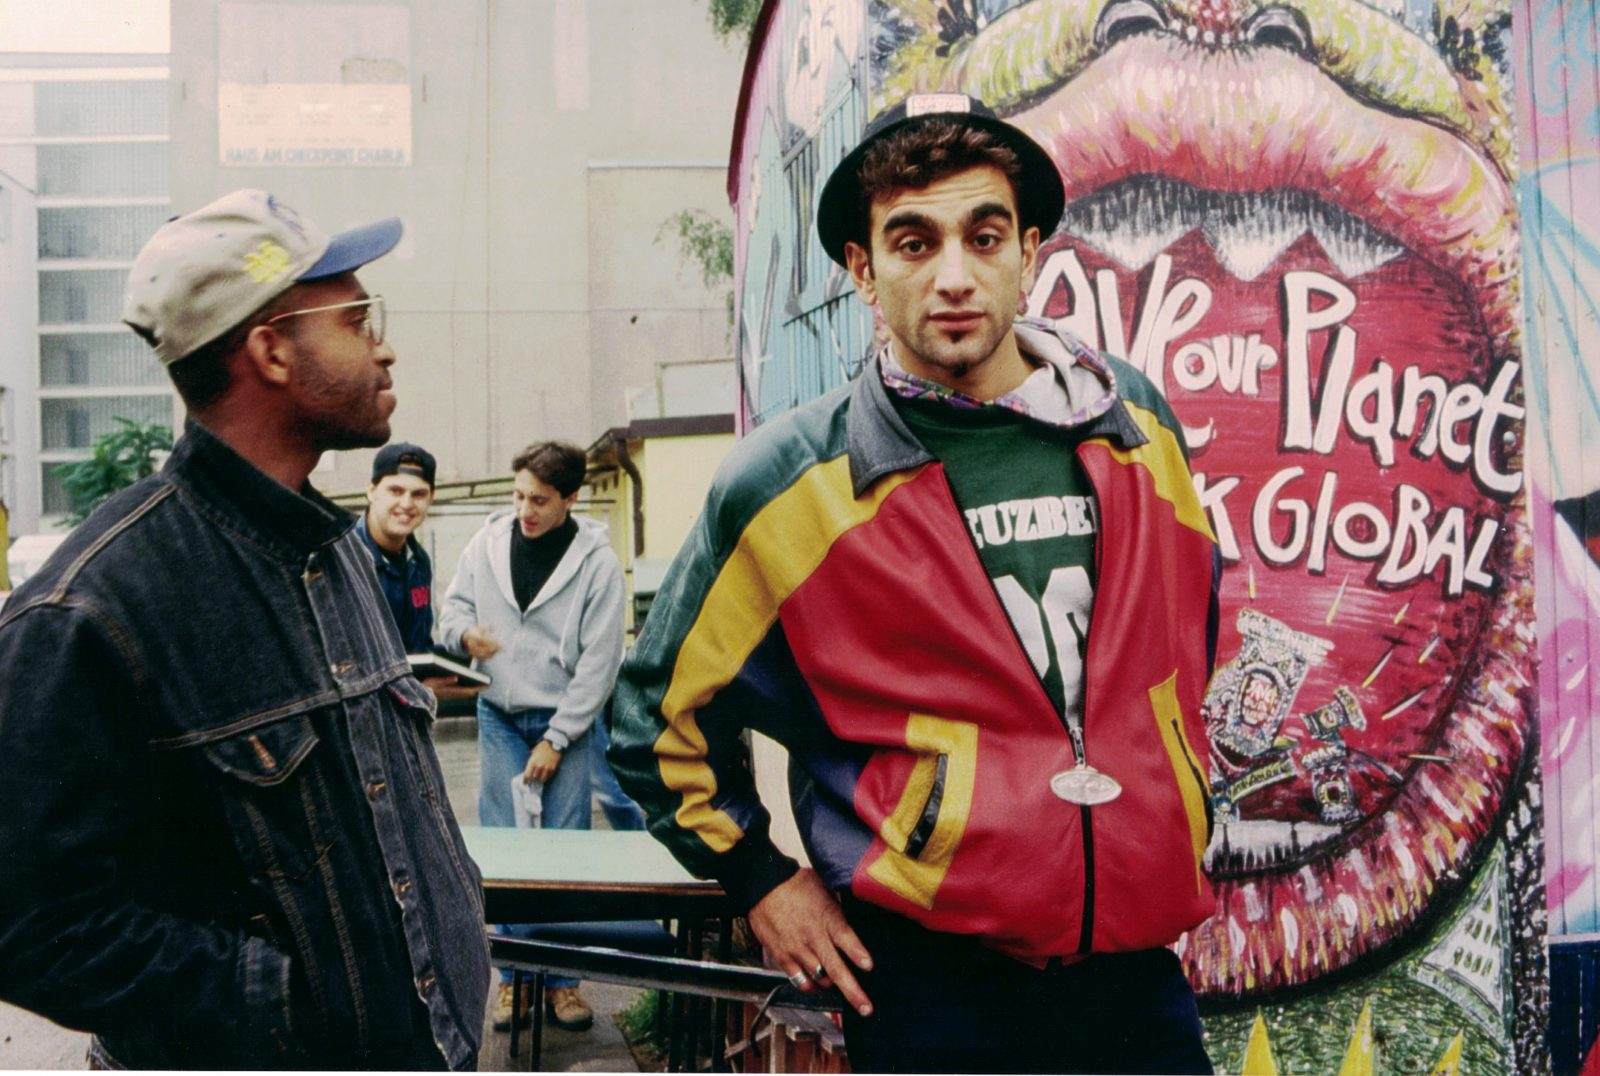 Graffiti artists Jayone and Giò in front of a graffiti in the early Nineties. The artists were activists against racism.